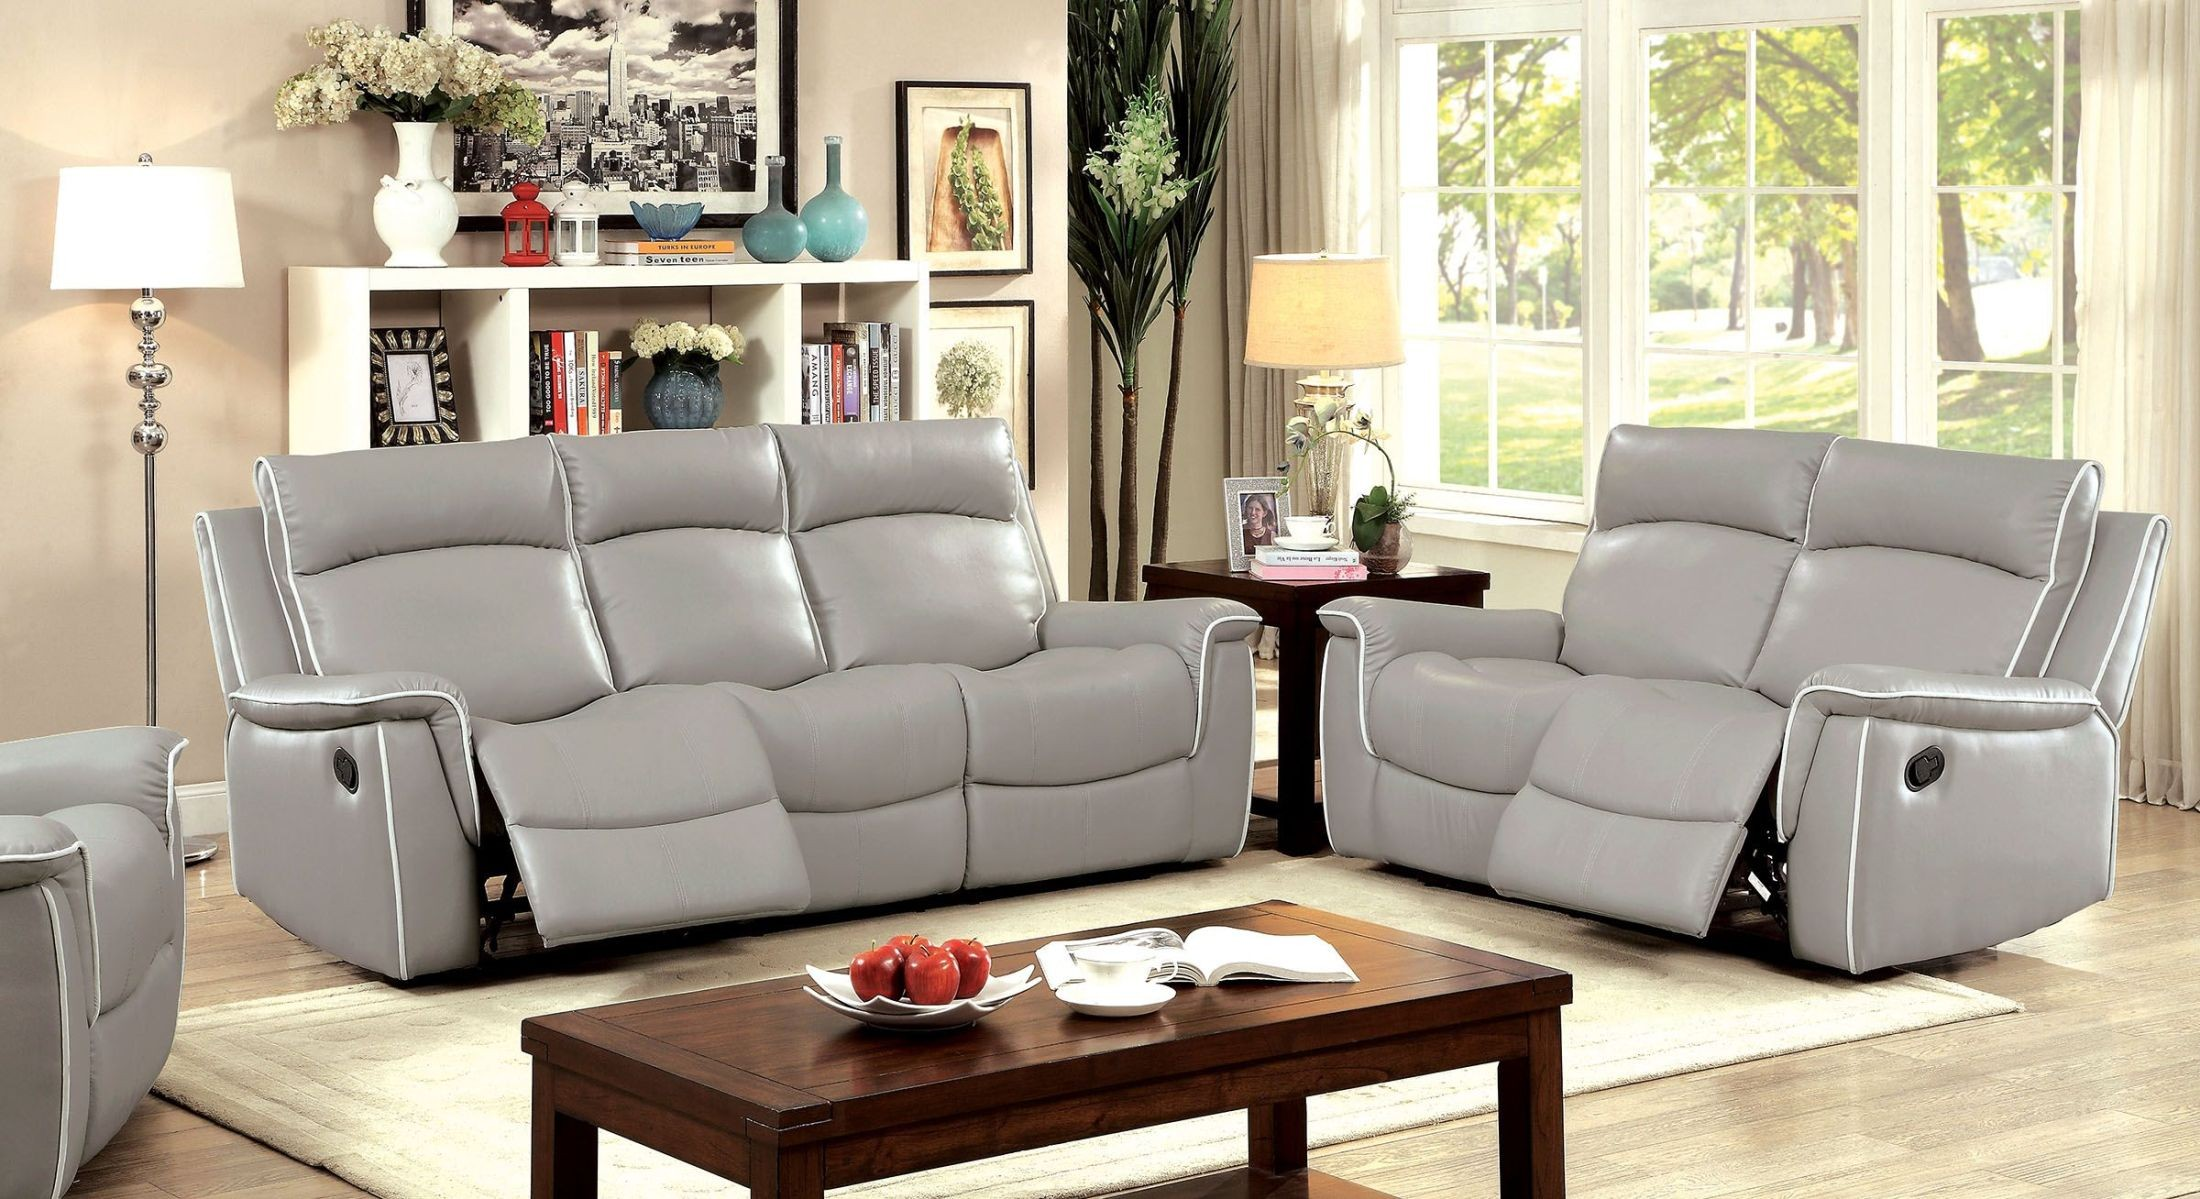 salome light gray recliner living room set cm6798 sf furniture of america. Black Bedroom Furniture Sets. Home Design Ideas